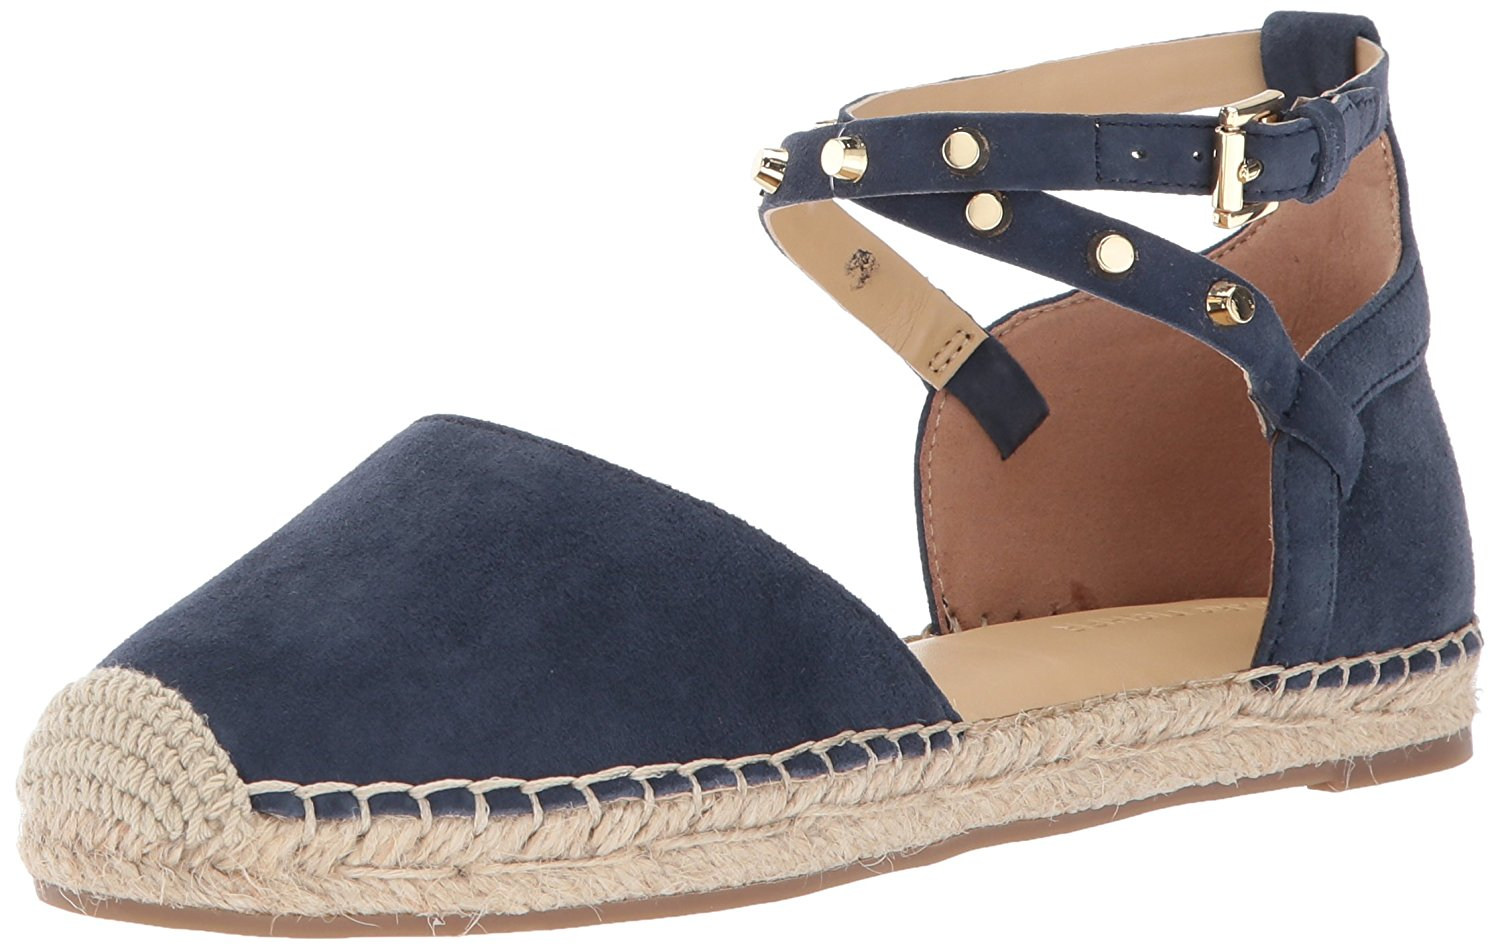 6ea67c09569f Details about Marc Fisher Womens Maci Leather Closed Toe Ankle Strap  Espadrille Flats